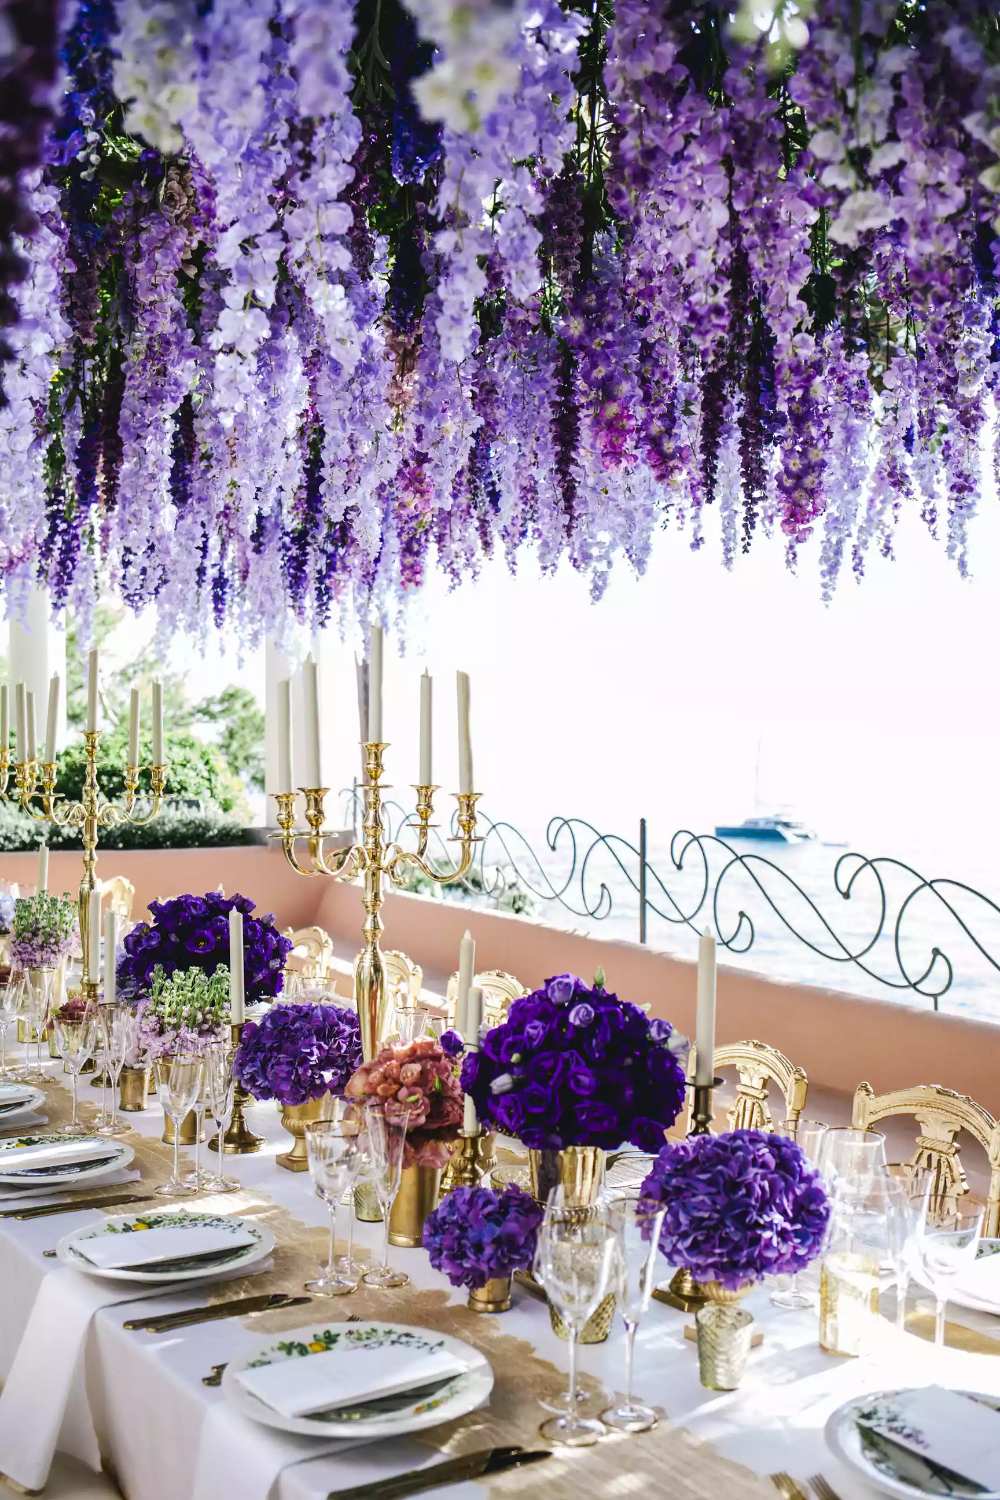 Annie Lawless S Spectacular Wedding In Positano Purple And Gold Wedding Purple Wedding Flowers Purple Wedding Decorations